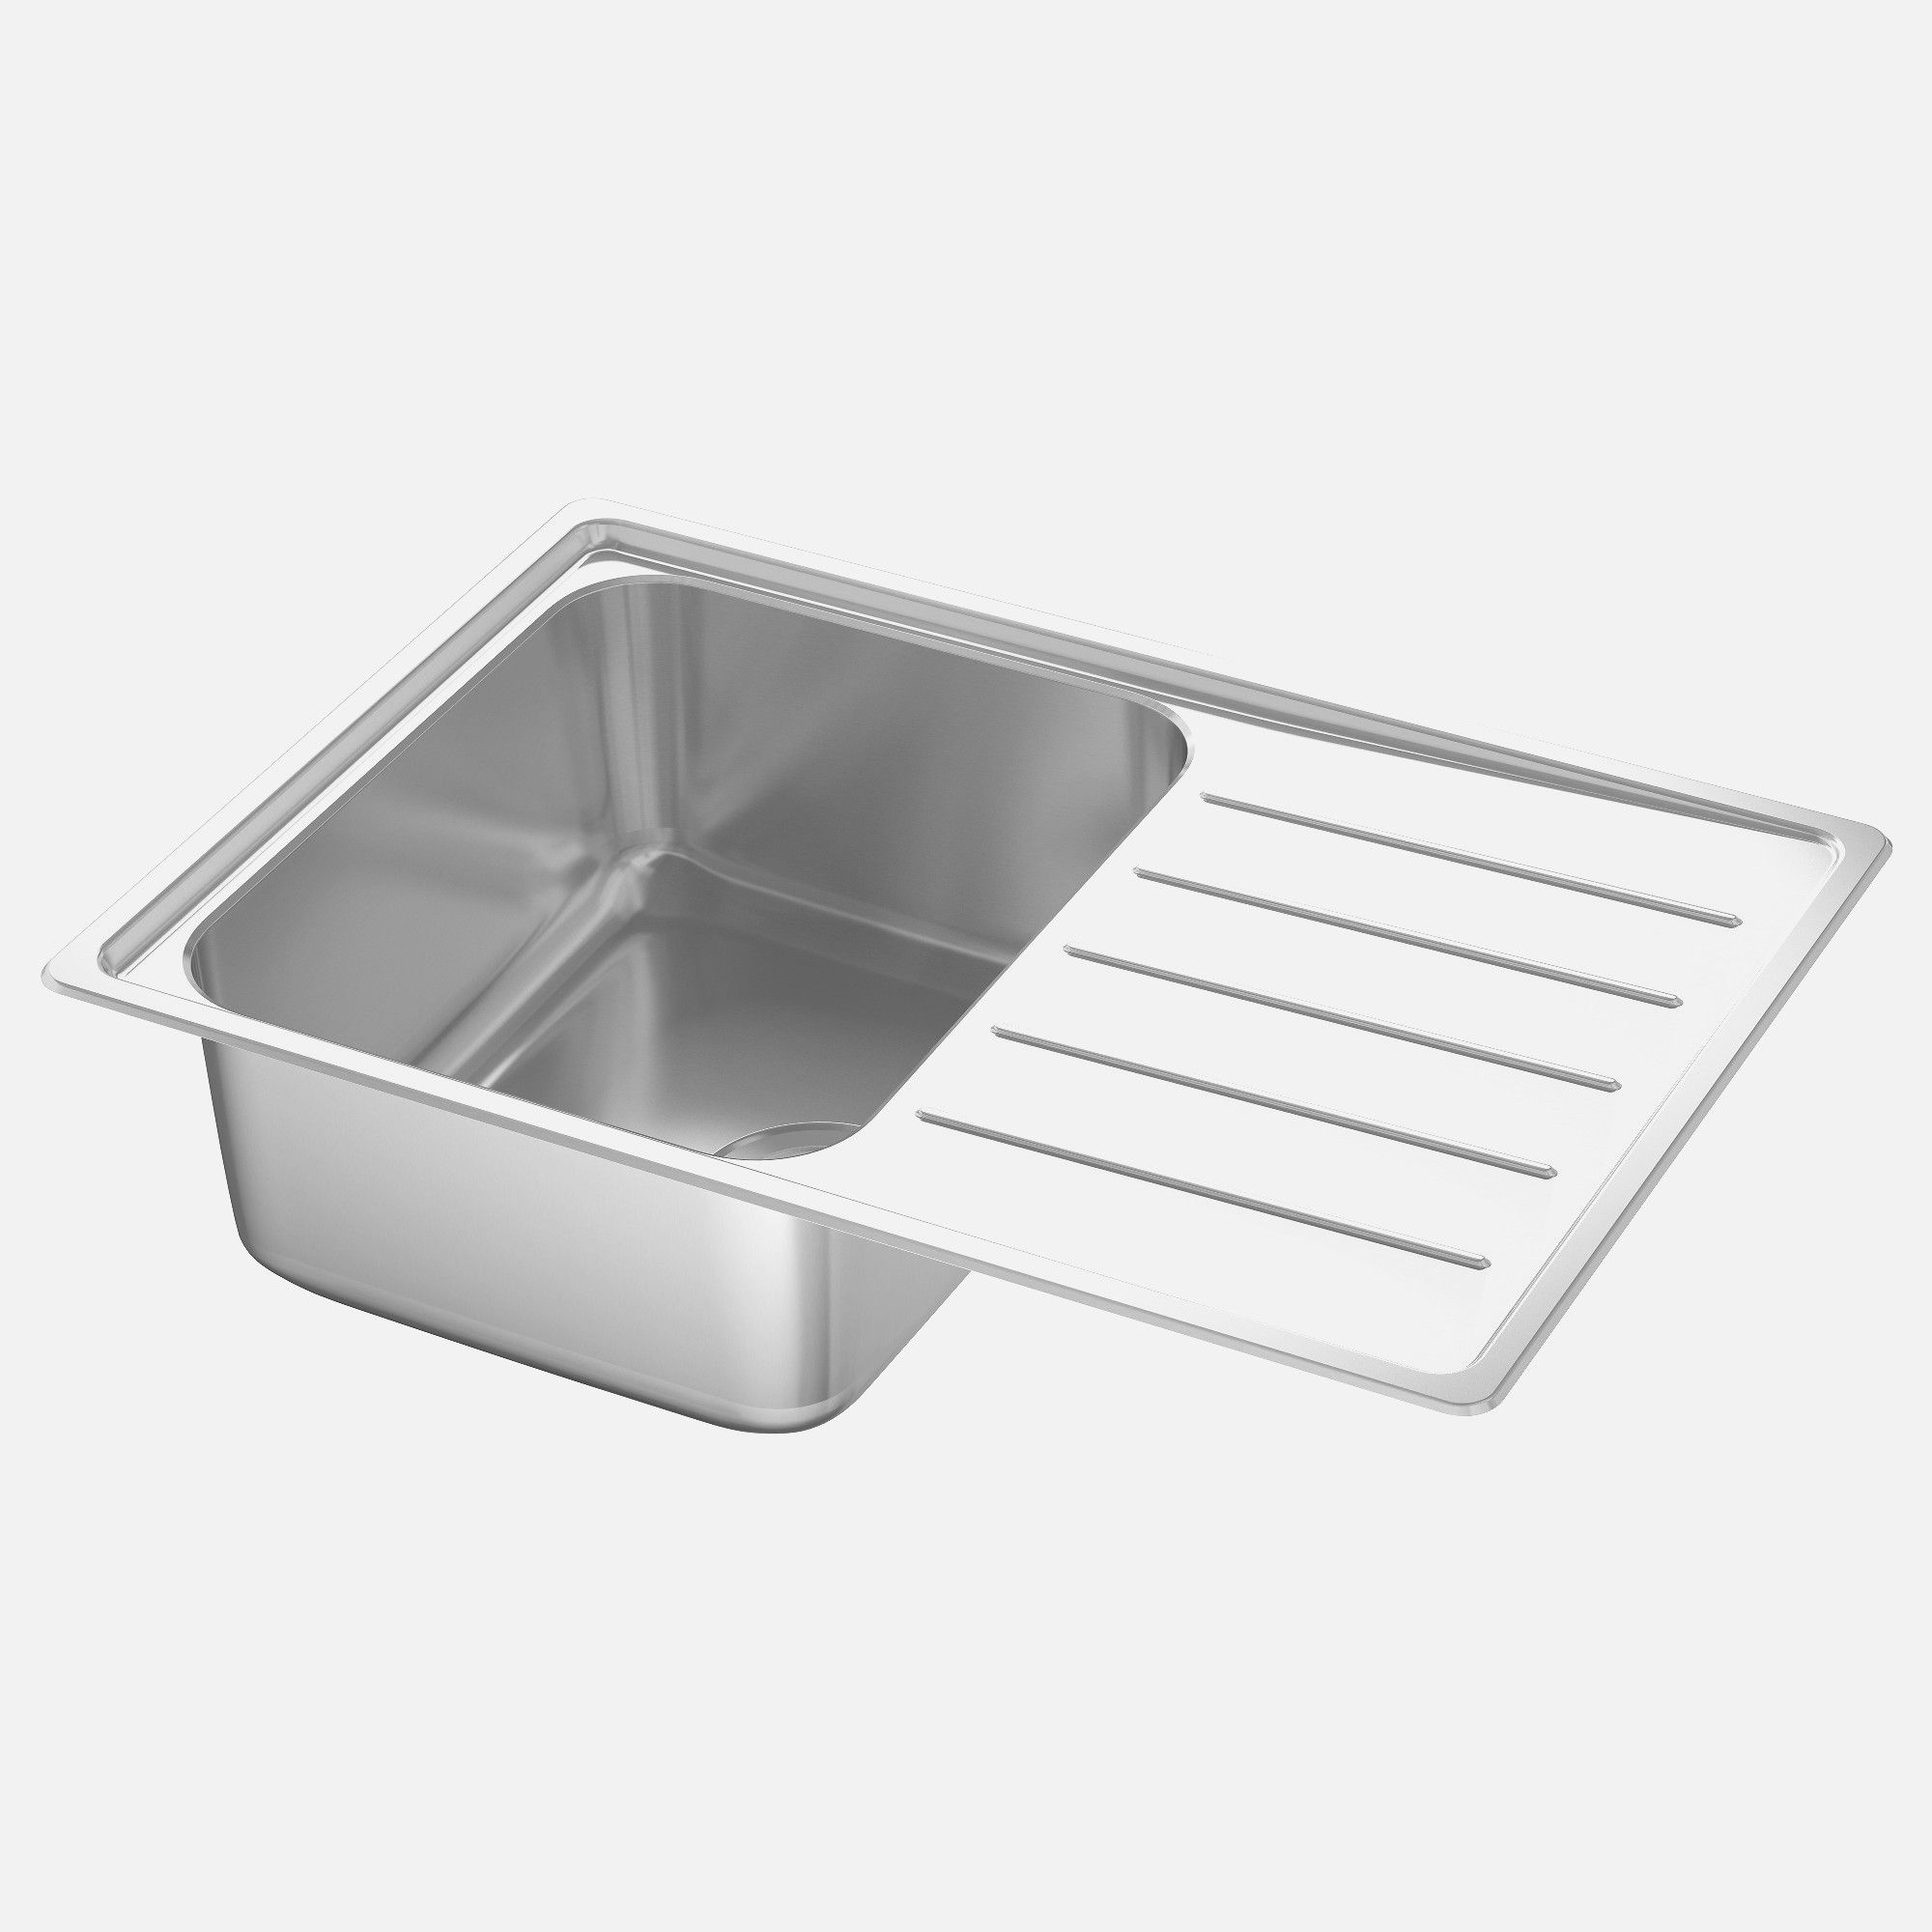 Stainless Steel Kitchen Sink Reviews Sinks Cleaning Drop In For 24